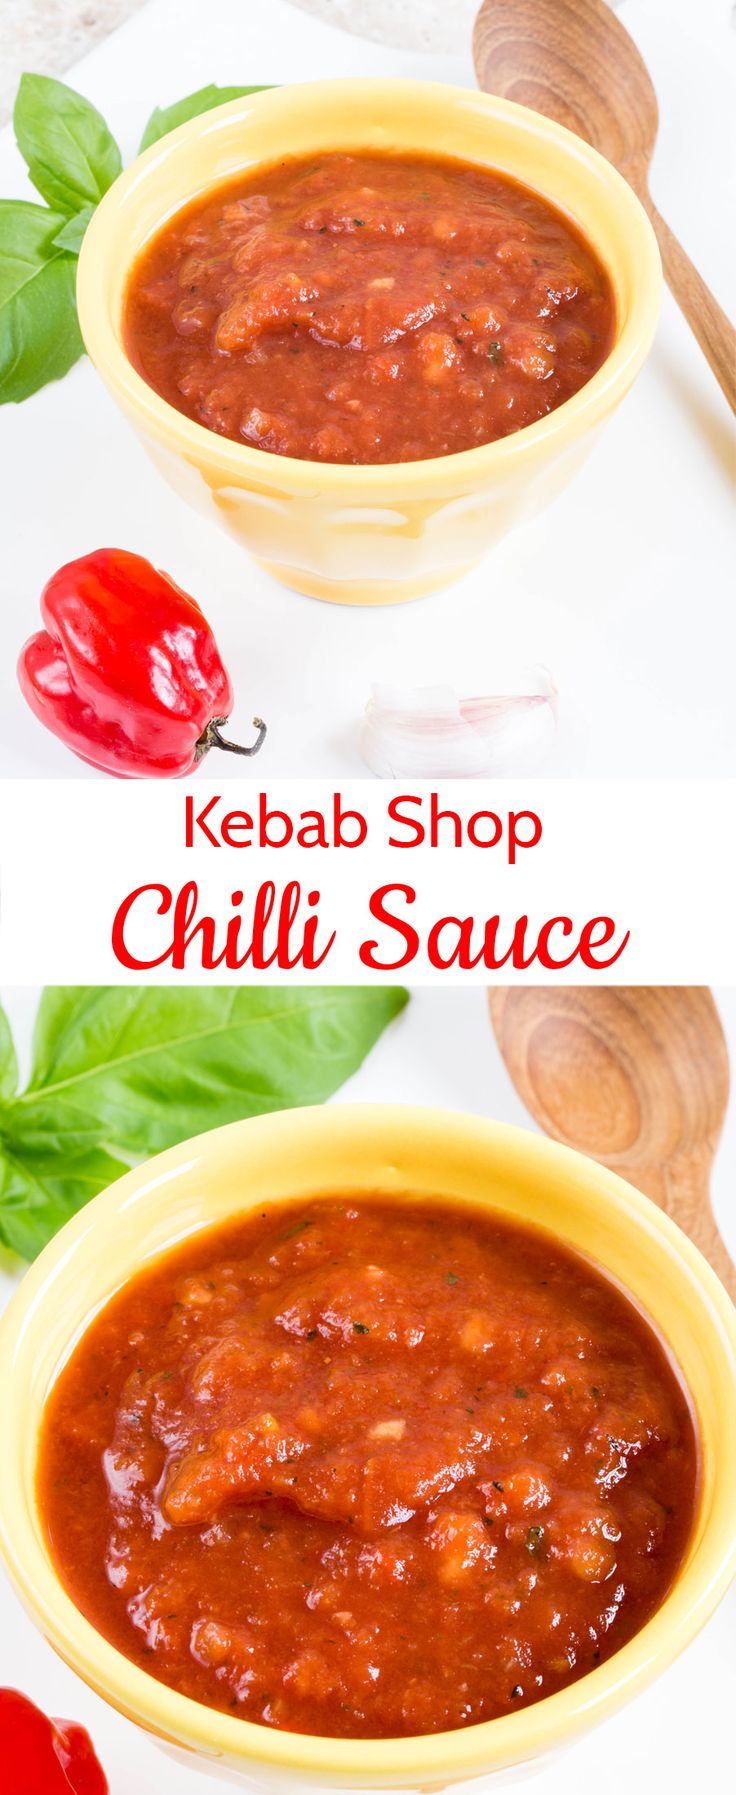 Kebab shop chilli sauce - takeaway style, authentic, no cook and as hot as you like.